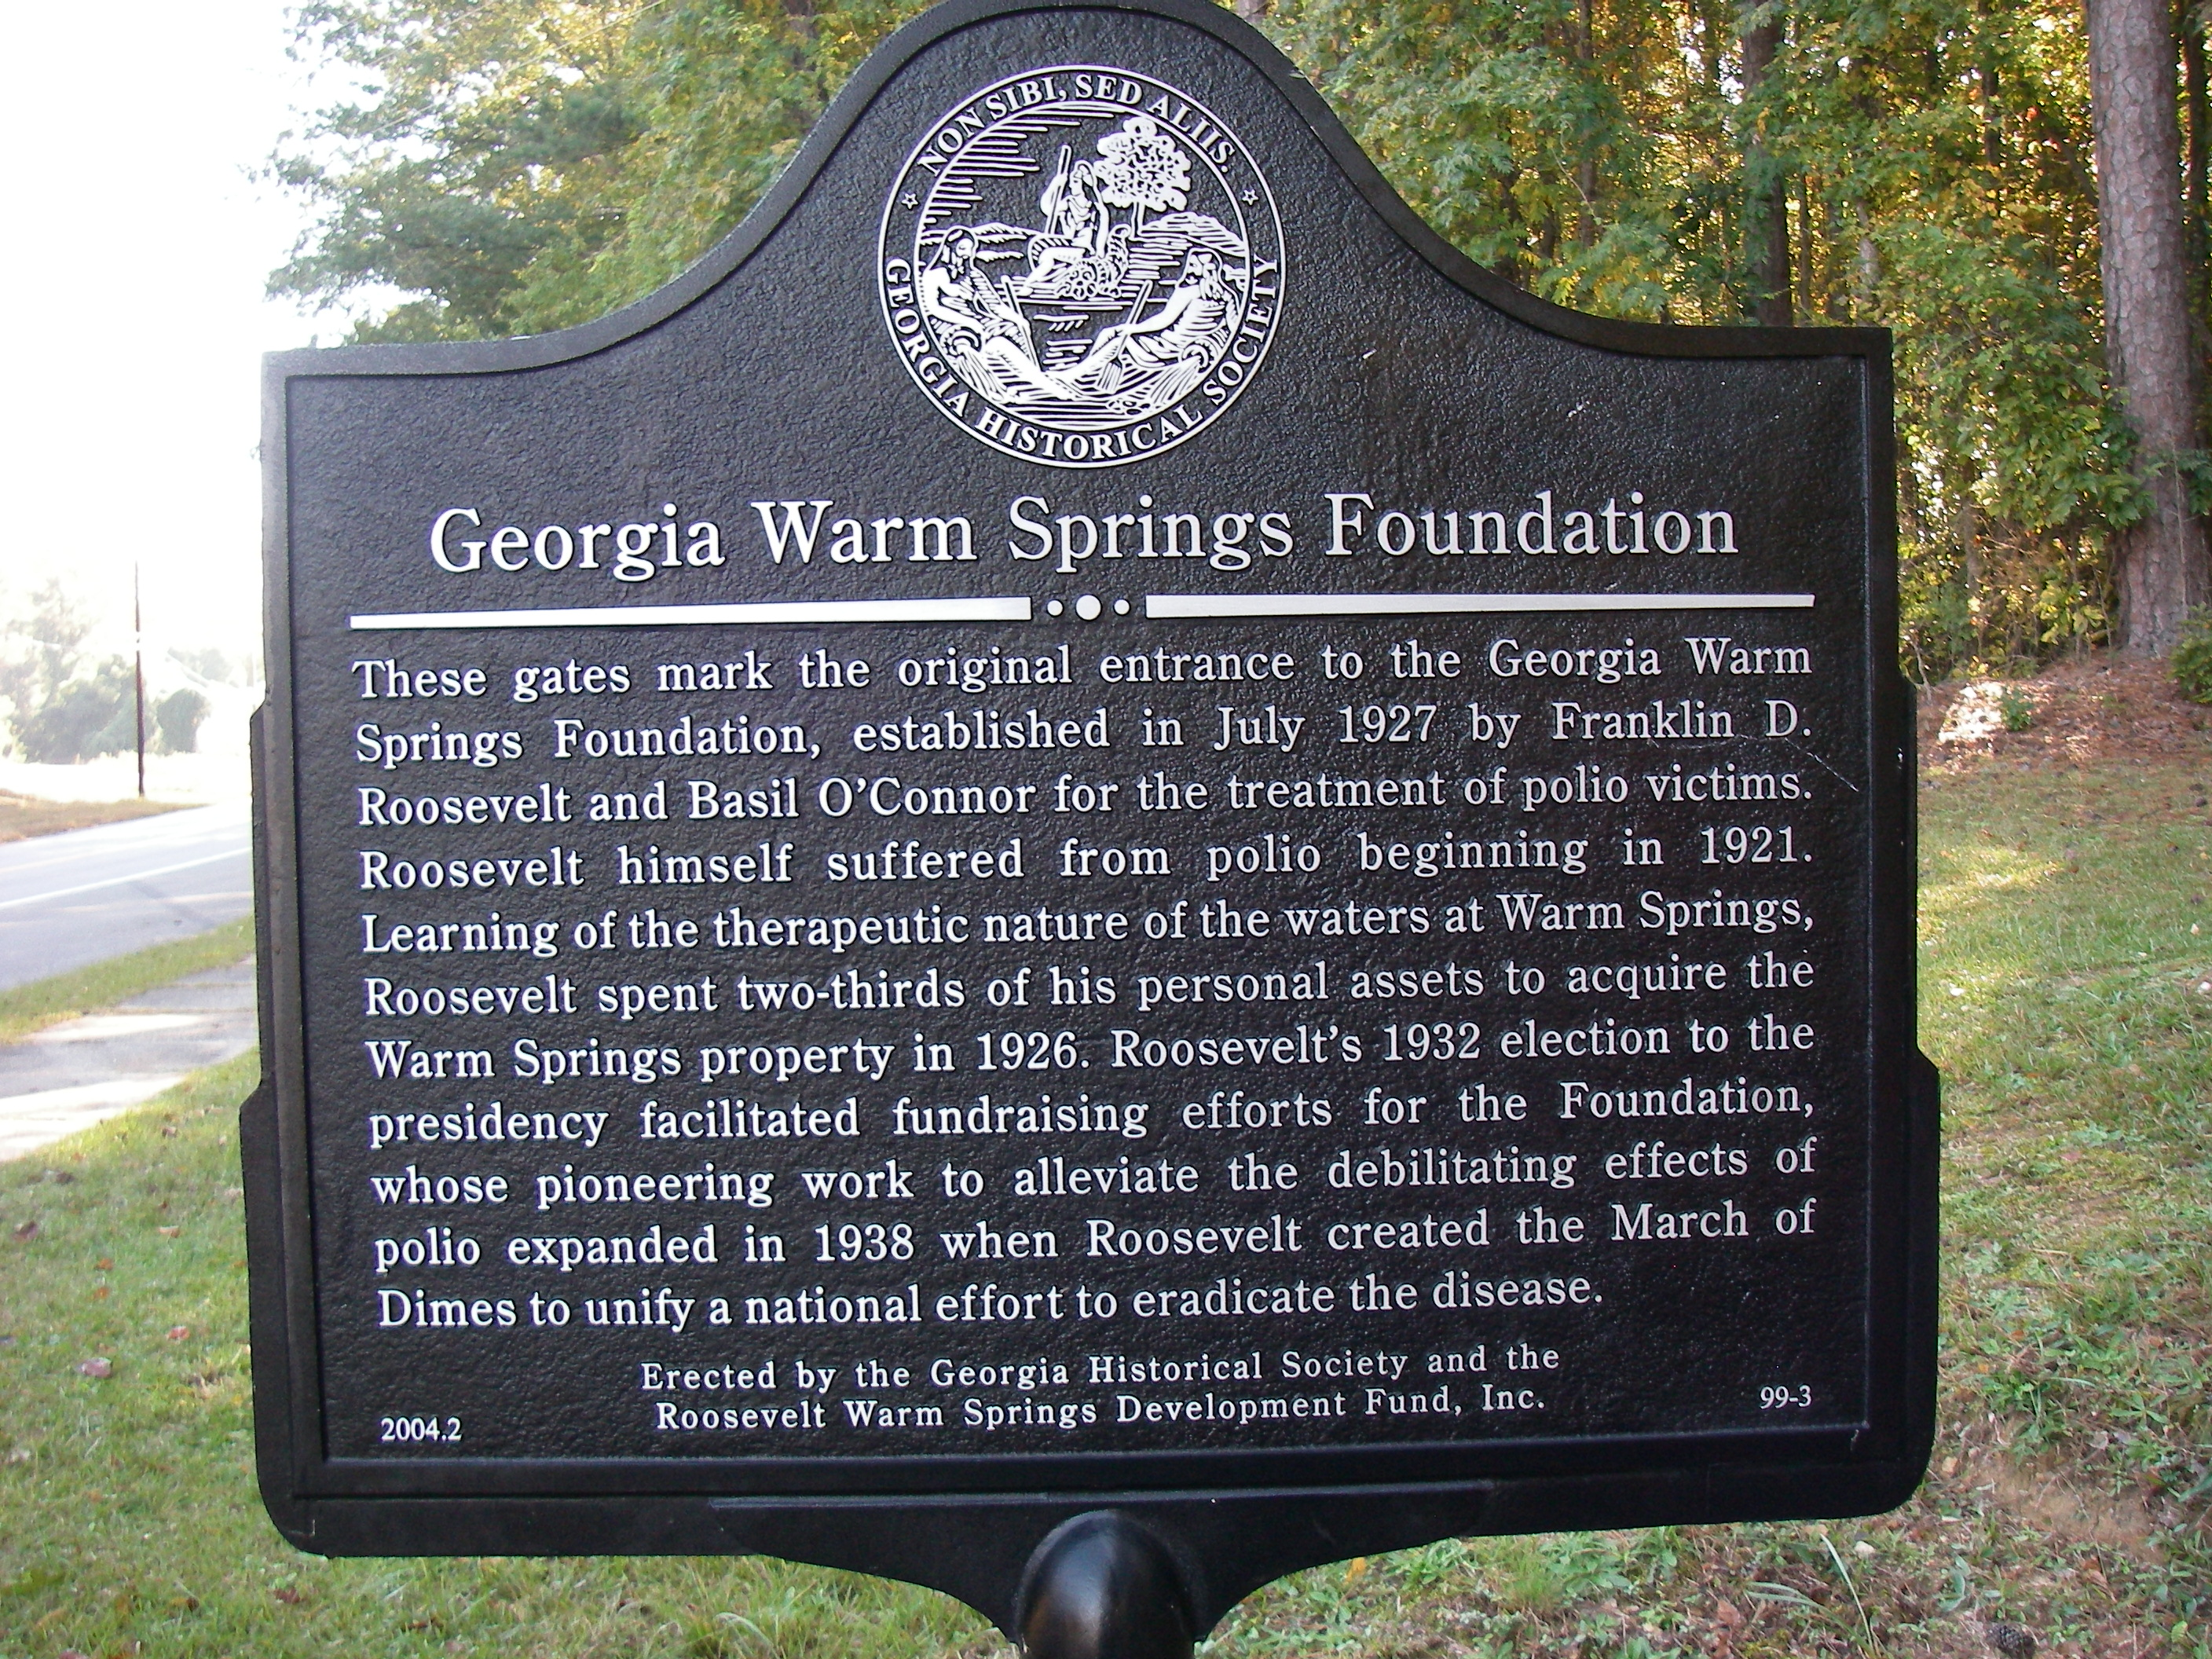 Georgia-warm-springs-foundation-ghm-099-3-3138